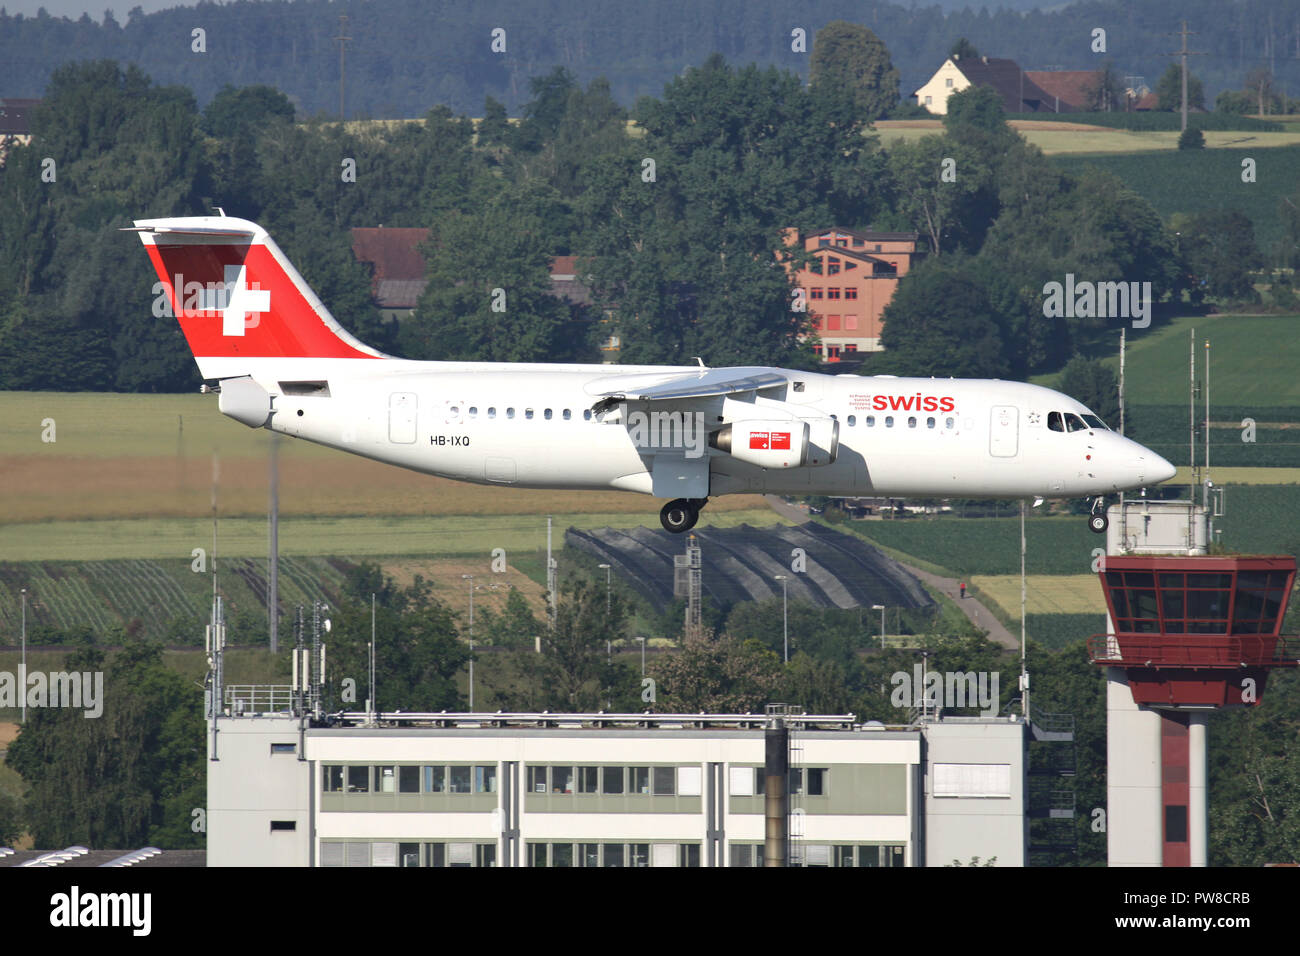 Swiss International Air Lines Avro RJ100 (old livery) with registration HB-IXQ on short final for runway 34 of Zurich Airport. Stock Photo